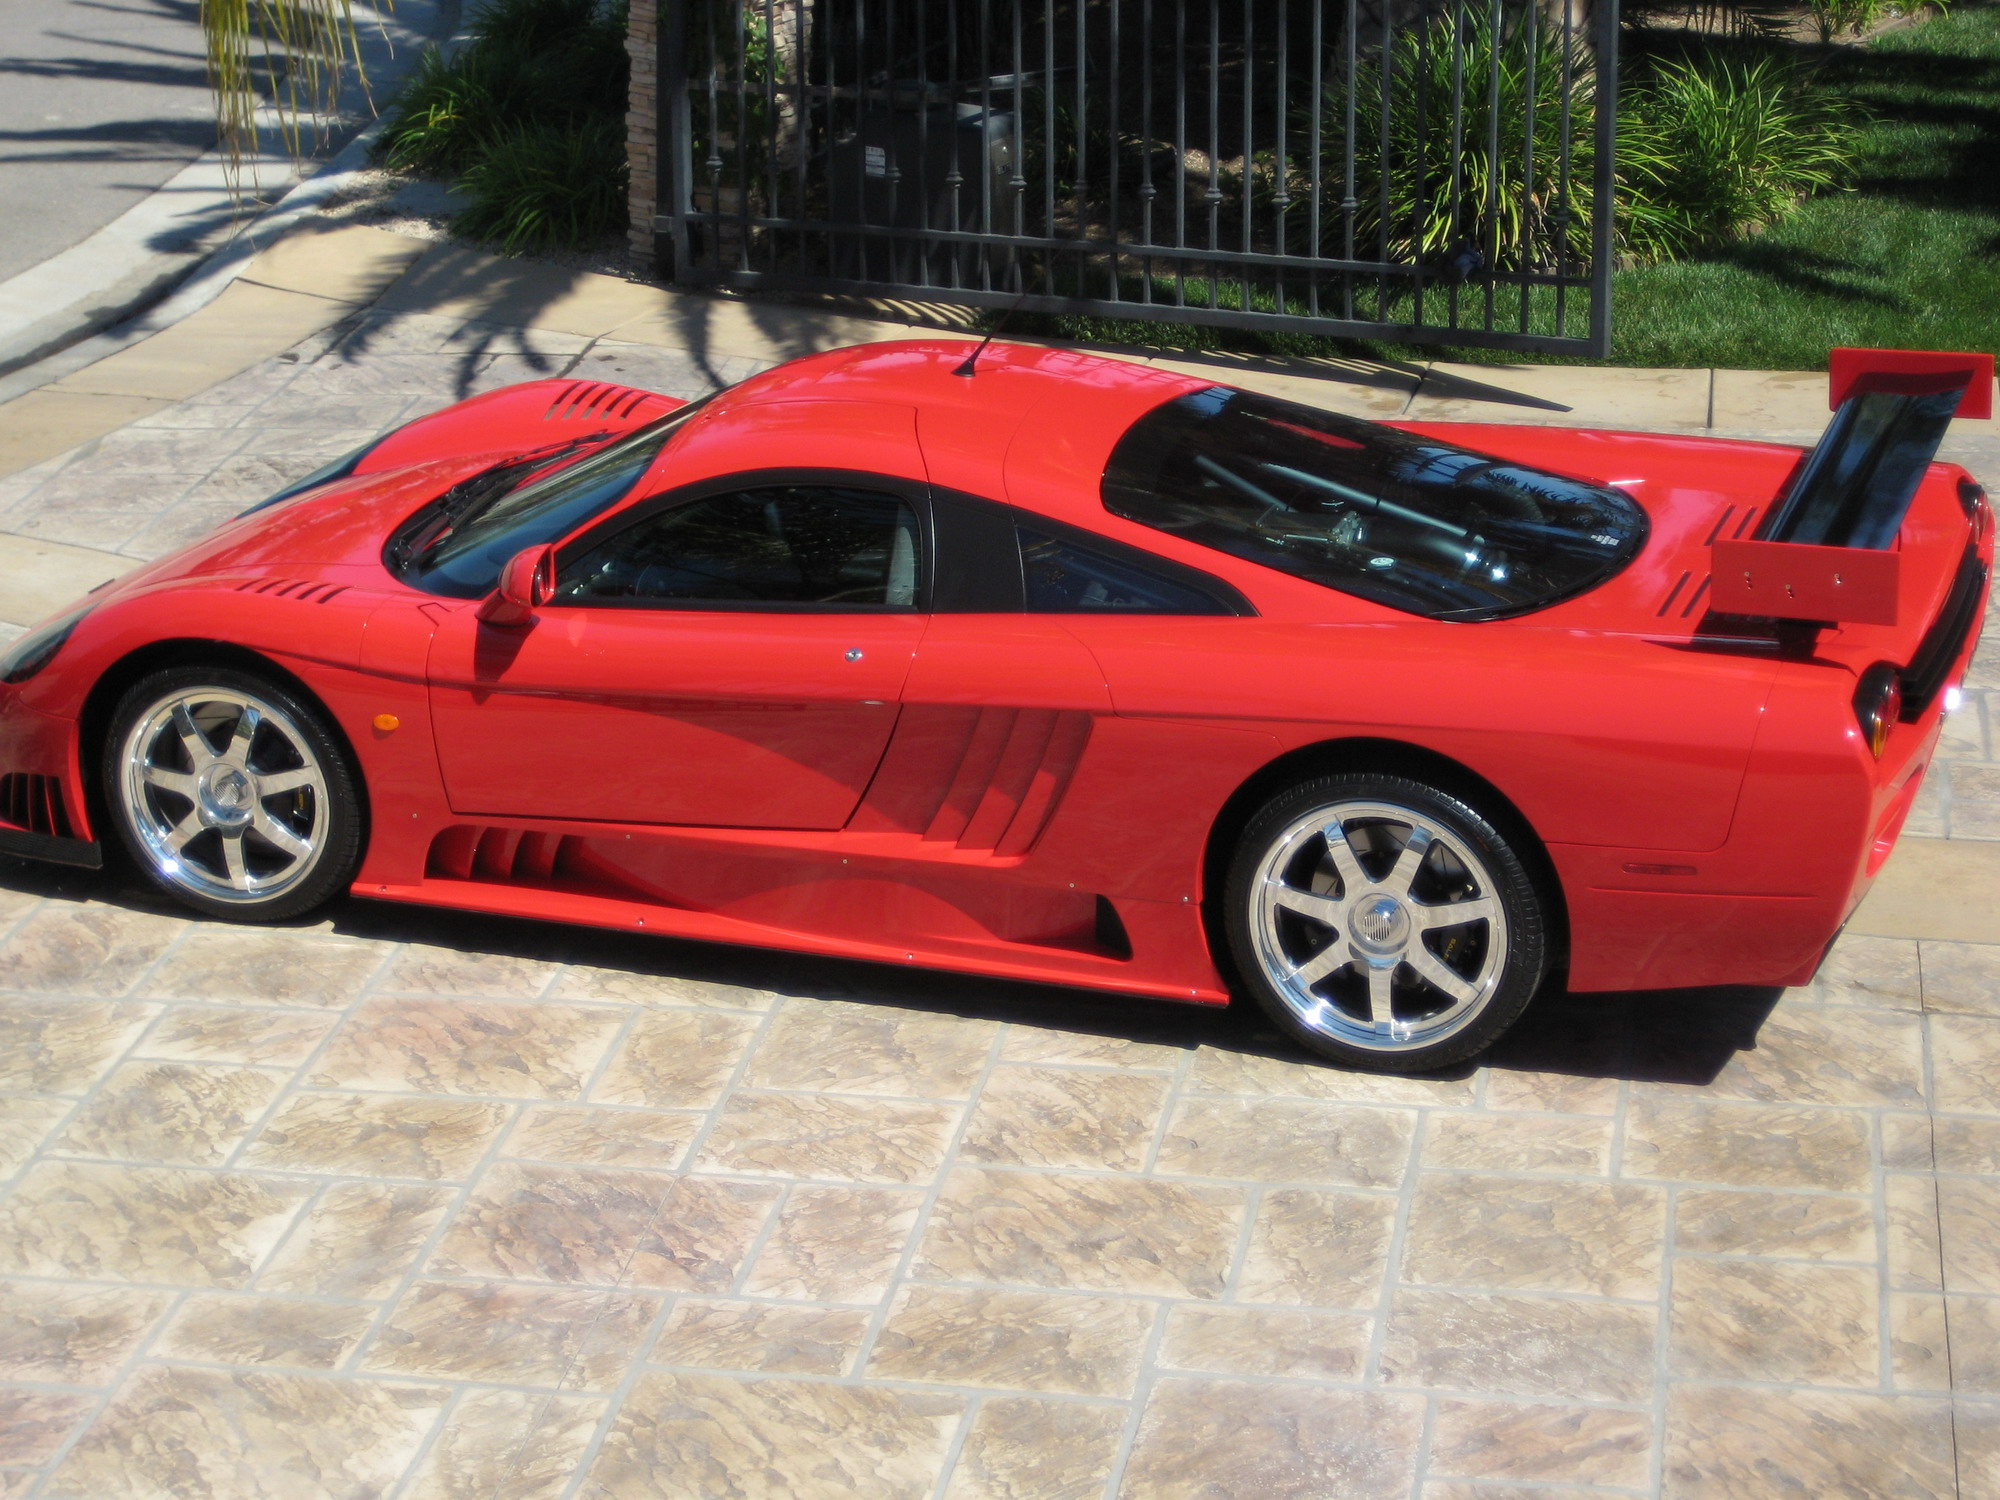 Street Legal Saleen S7 petition For Sale